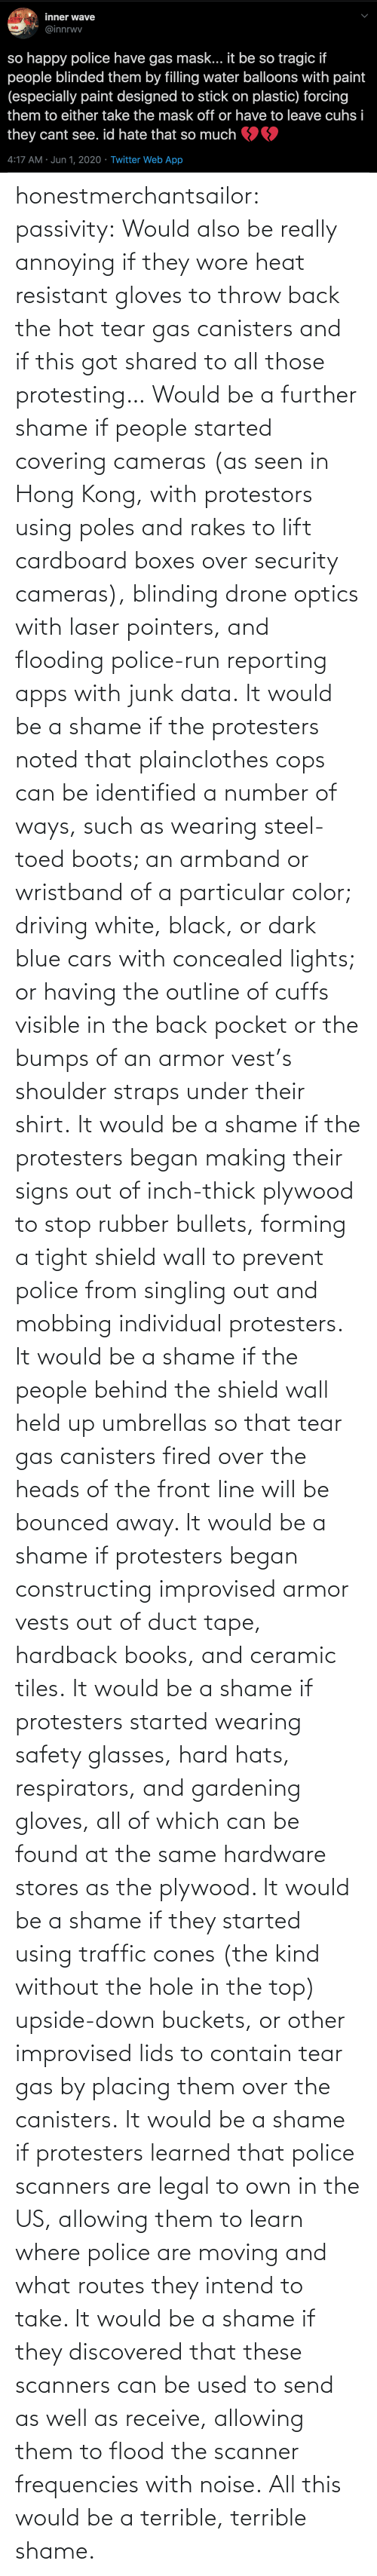 Boots: honestmerchantsailor:  passivity: Would also be really annoying if they wore heat resistant gloves to throw back the hot tear gas canisters and if this got shared to all those protesting… Would be a further shame if people started covering cameras (as seen in Hong Kong, with protestors using poles and rakes to lift cardboard boxes over security cameras), blinding drone optics with laser pointers, and flooding police-run reporting apps with junk data. It would be a shame if the protesters noted that plainclothes cops can be identified a number of ways, such as wearing steel-toed boots; an armband or wristband of a particular color; driving white, black, or dark blue cars with concealed lights; or having the outline of cuffs visible in the back pocket or the bumps of an armor vest's shoulder straps under their shirt. It would be a shame if the protesters began making their signs out of inch-thick plywood to stop rubber bullets, forming a tight shield wall to prevent police from singling out and mobbing individual protesters. It would be a shame if the people behind the shield wall held up umbrellas so that tear gas canisters fired over the heads of the front line will be bounced away. It would be a shame if protesters began constructing improvised armor vests out of duct tape, hardback books, and ceramic tiles. It would be a shame if protesters started wearing safety glasses, hard hats, respirators, and gardening gloves, all of which can be found at the same hardware stores as the plywood. It would be a shame if they started using traffic cones (the kind without the hole in the top) upside-down buckets, or other improvised lids to contain tear gas by placing them over the canisters. It would be a shame if protesters learned that police scanners are legal to own in the US, allowing them to learn where police are moving and what routes they intend to take. It would be a shame if they discovered that these scanners can be used to send as well as receive, allowing them to flood the scanner frequencies with noise. All this would be a terrible, terrible shame.